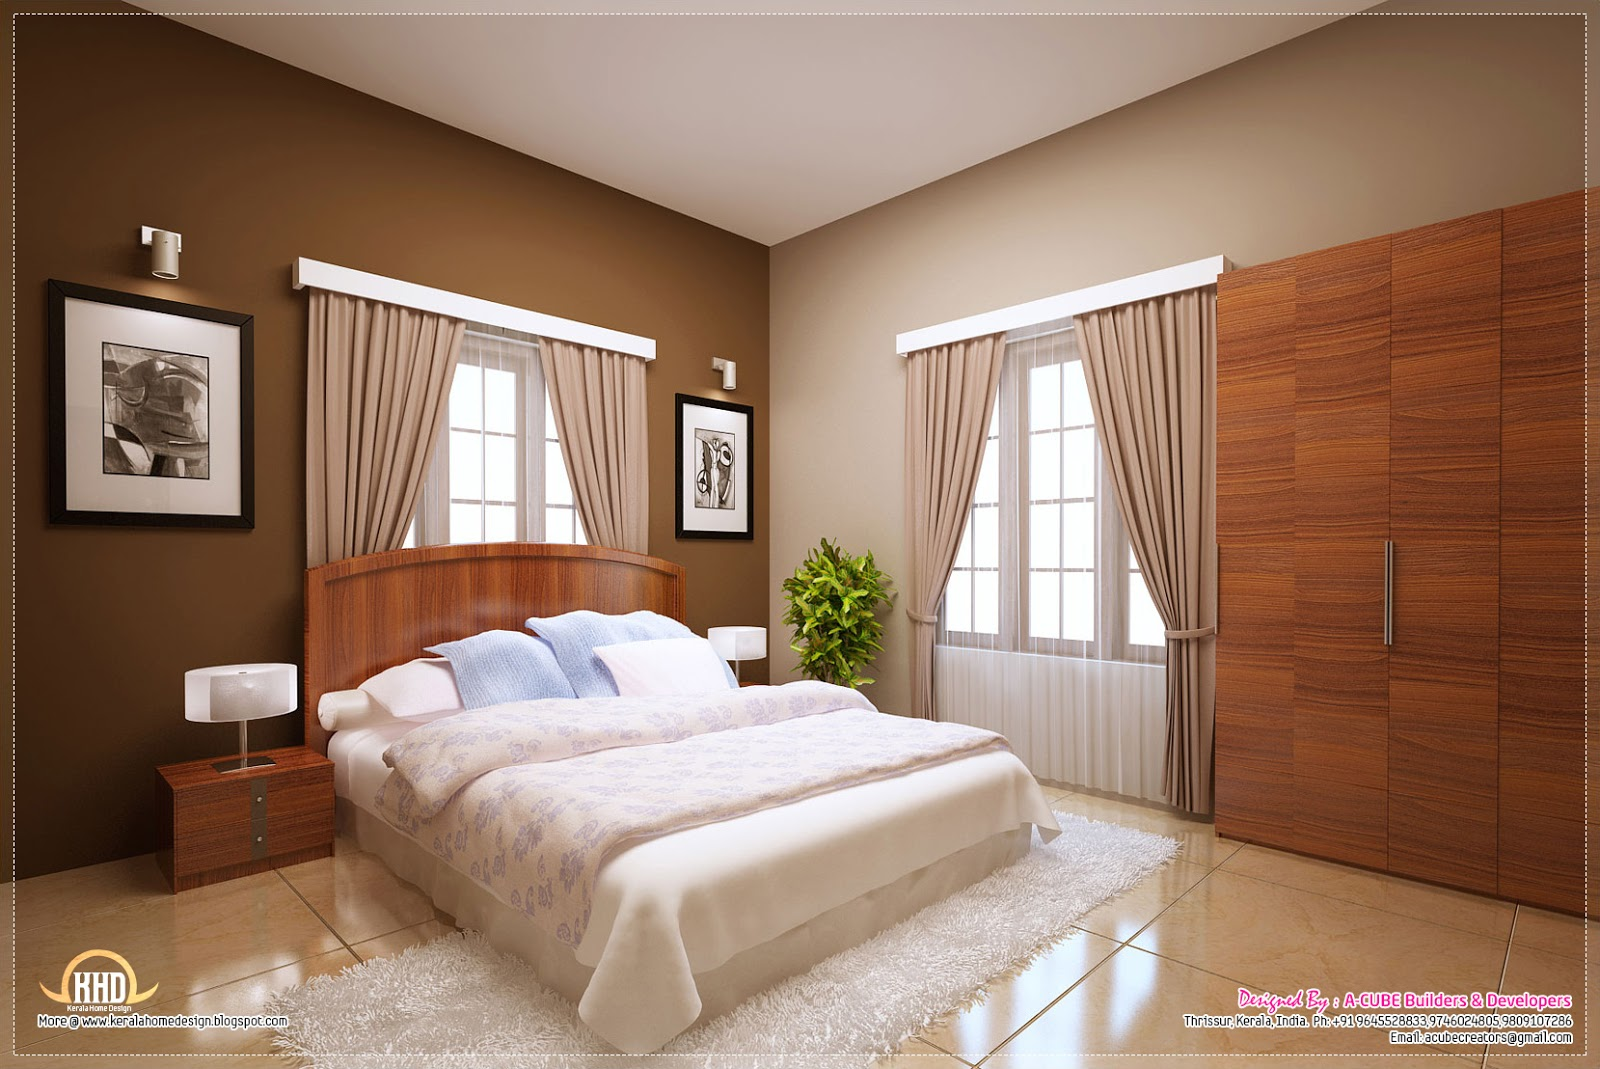 Kerala house interior design house interior for Interior design pictures